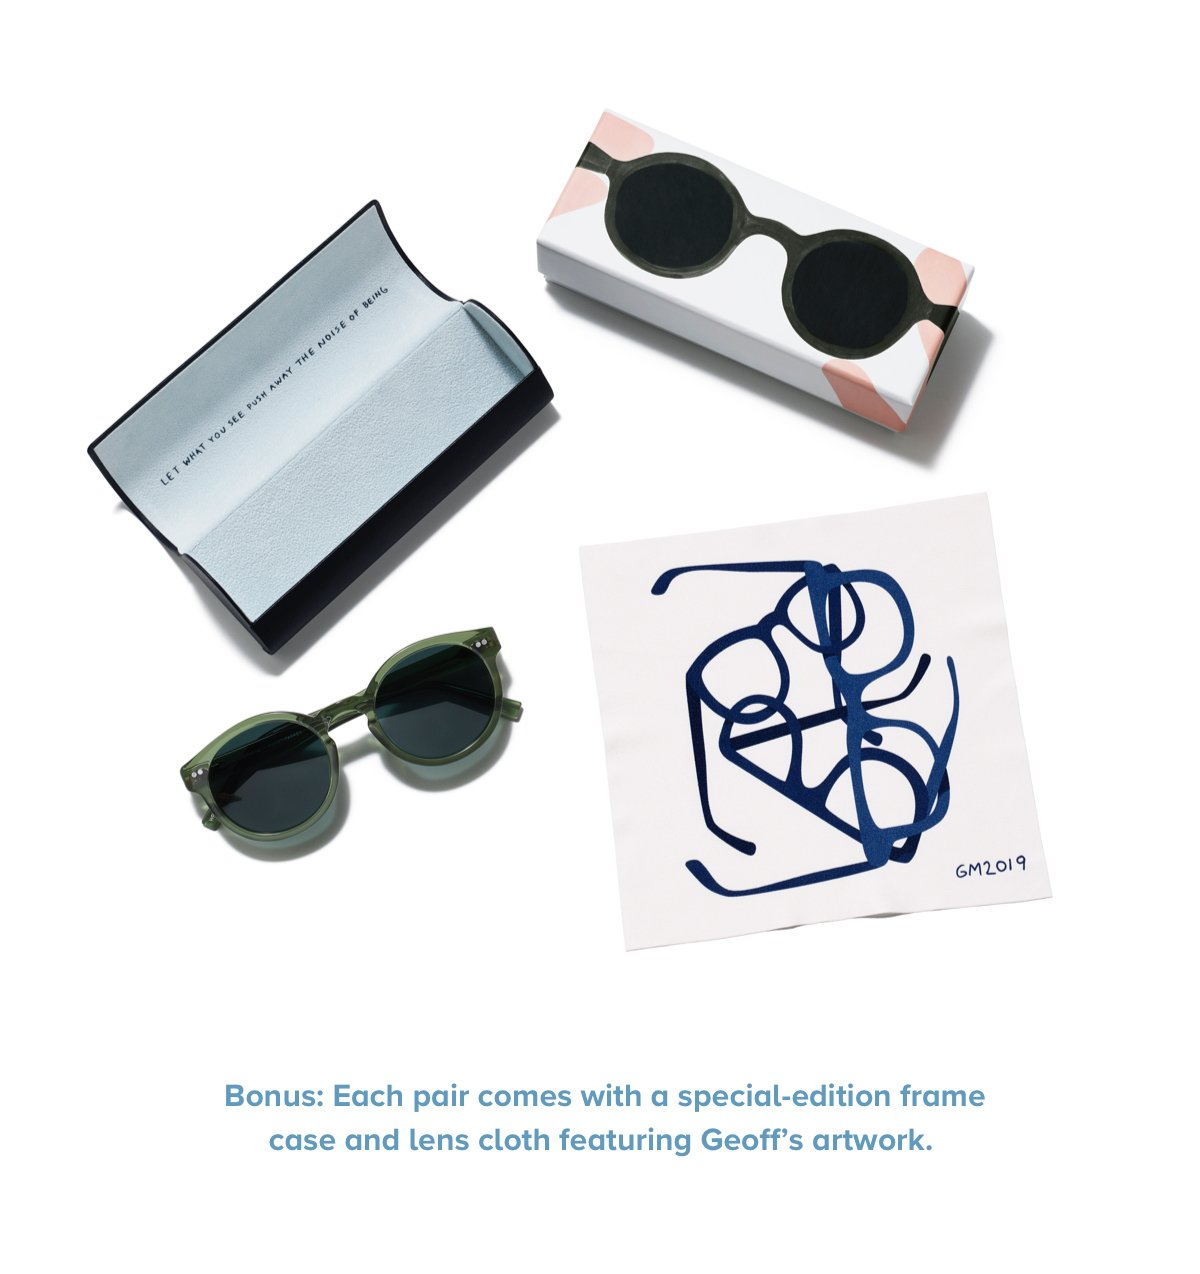 Bonus: Each pair comes with a special-edition frame case and lens cloth featuring Geoff's artwork.